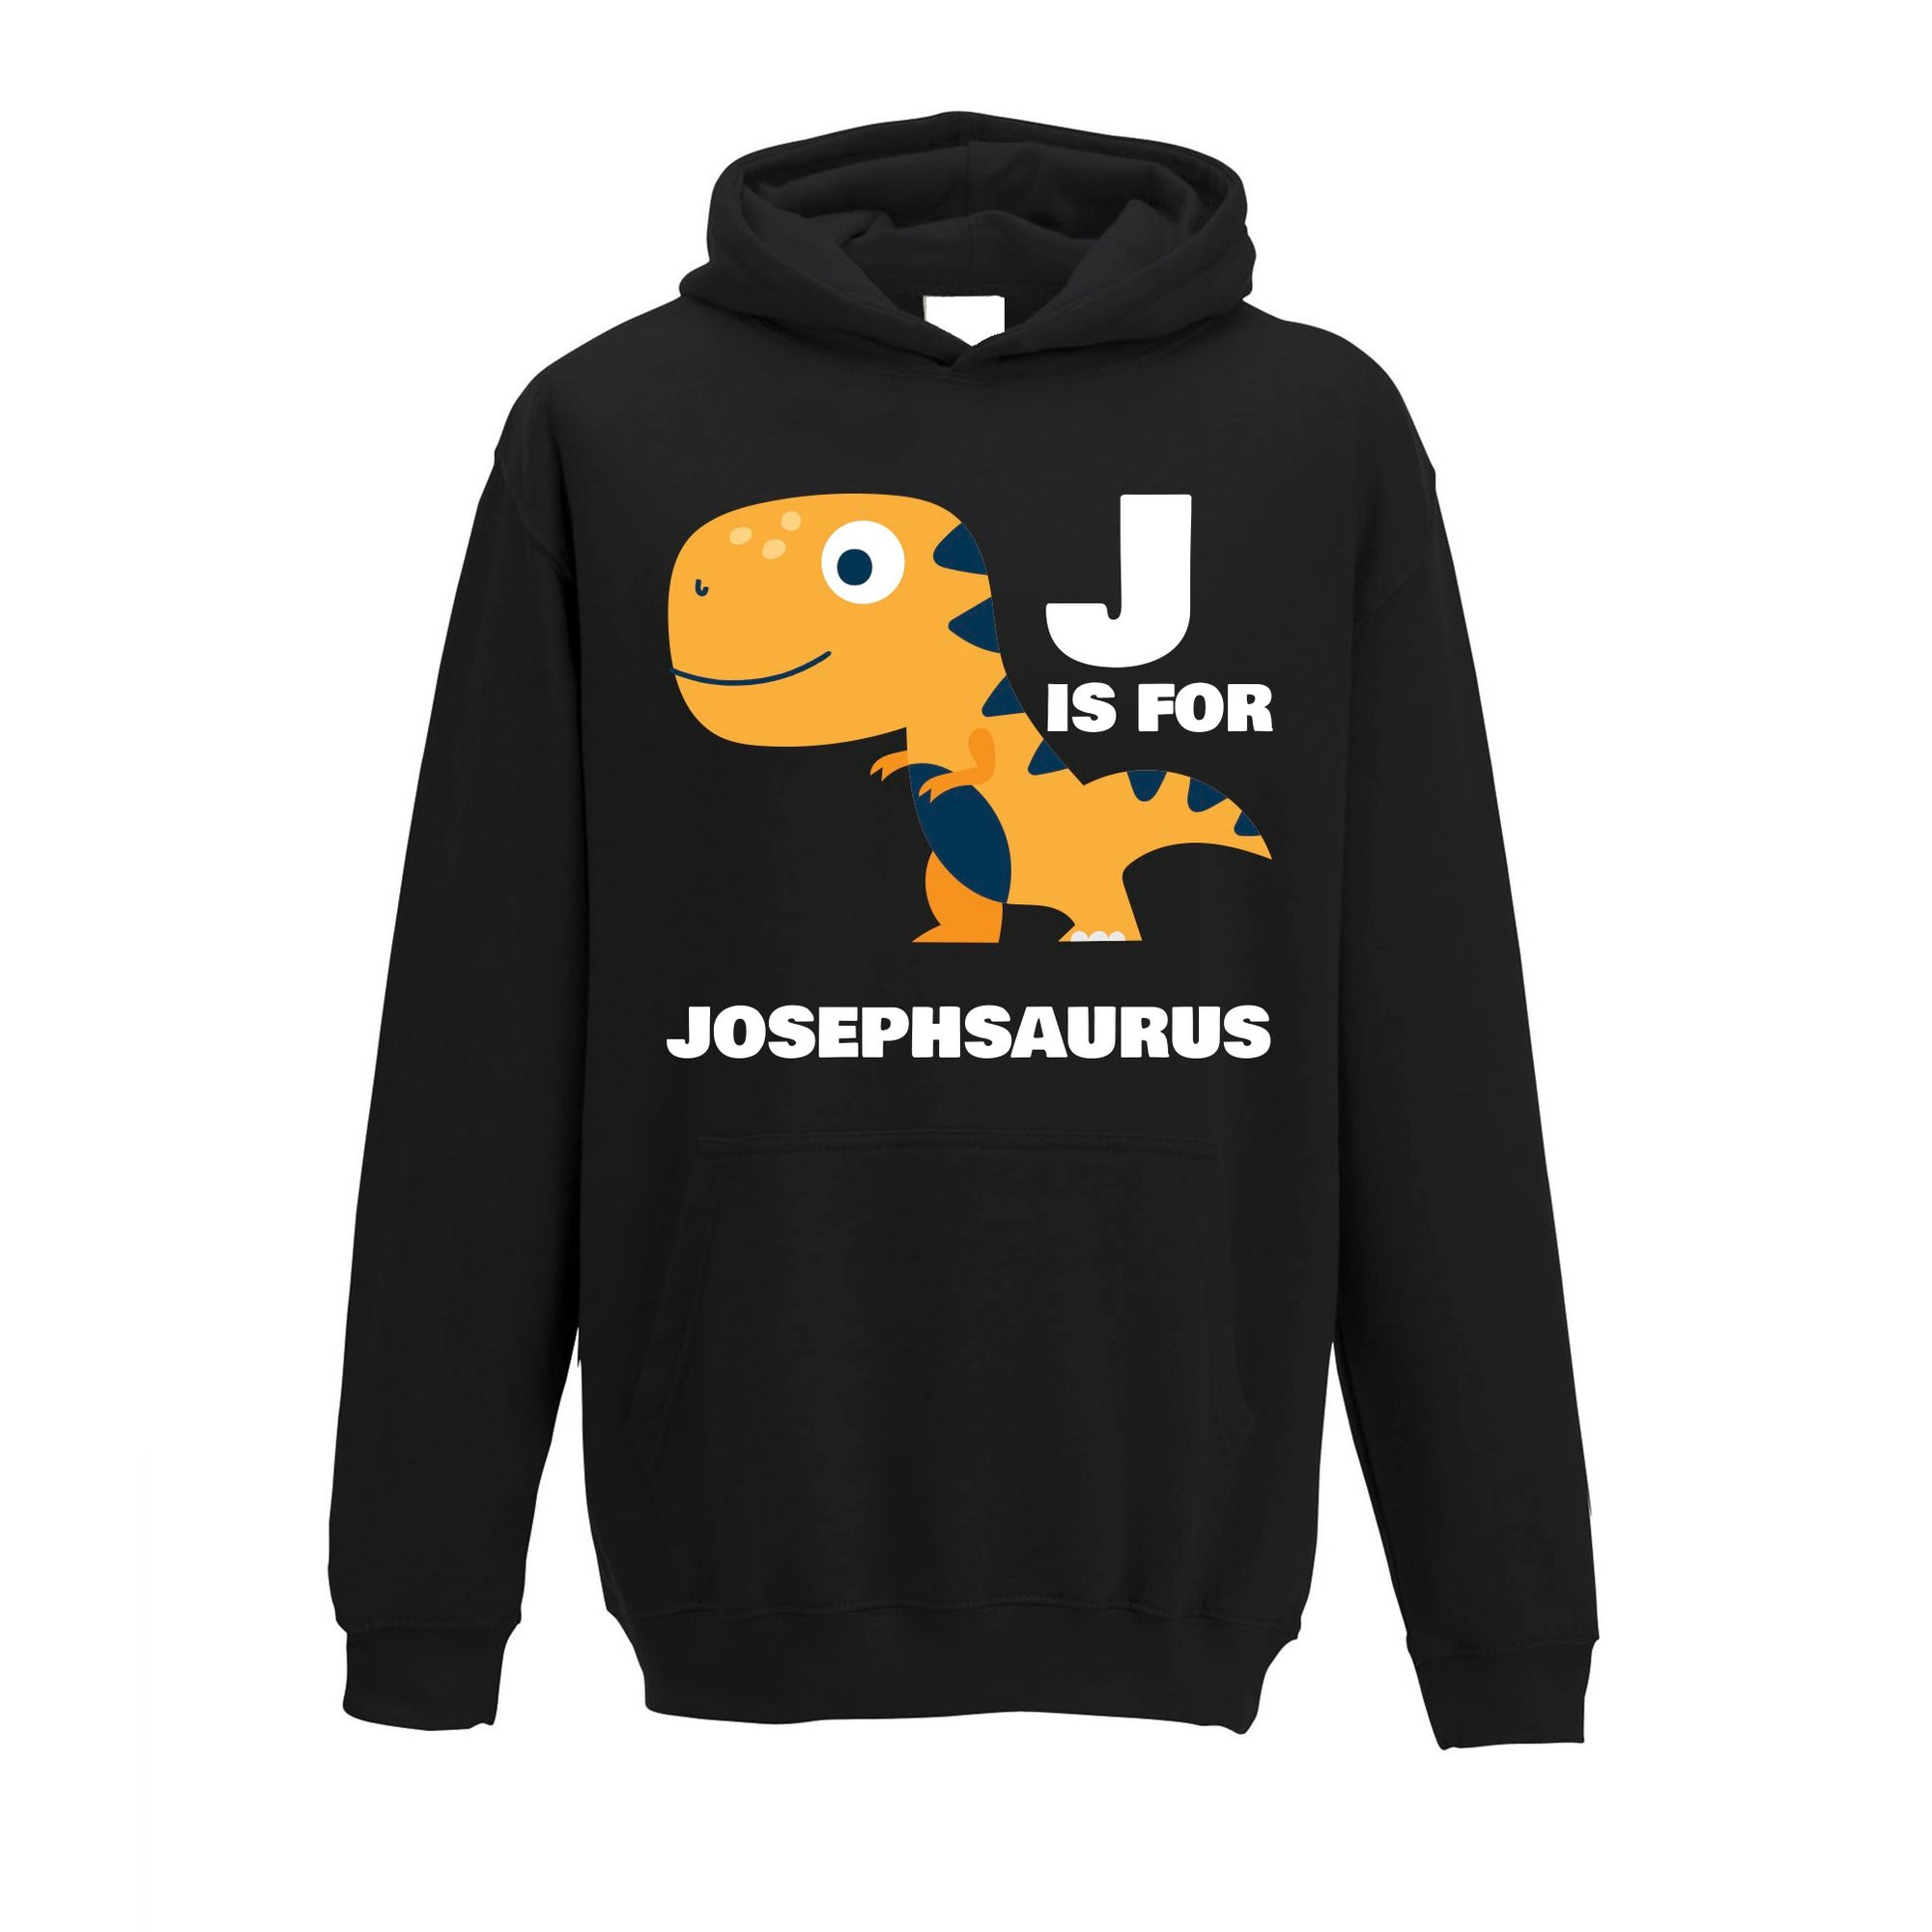 Dinosaur Kids Hoodie Joseph Saurus Birth Name Childs